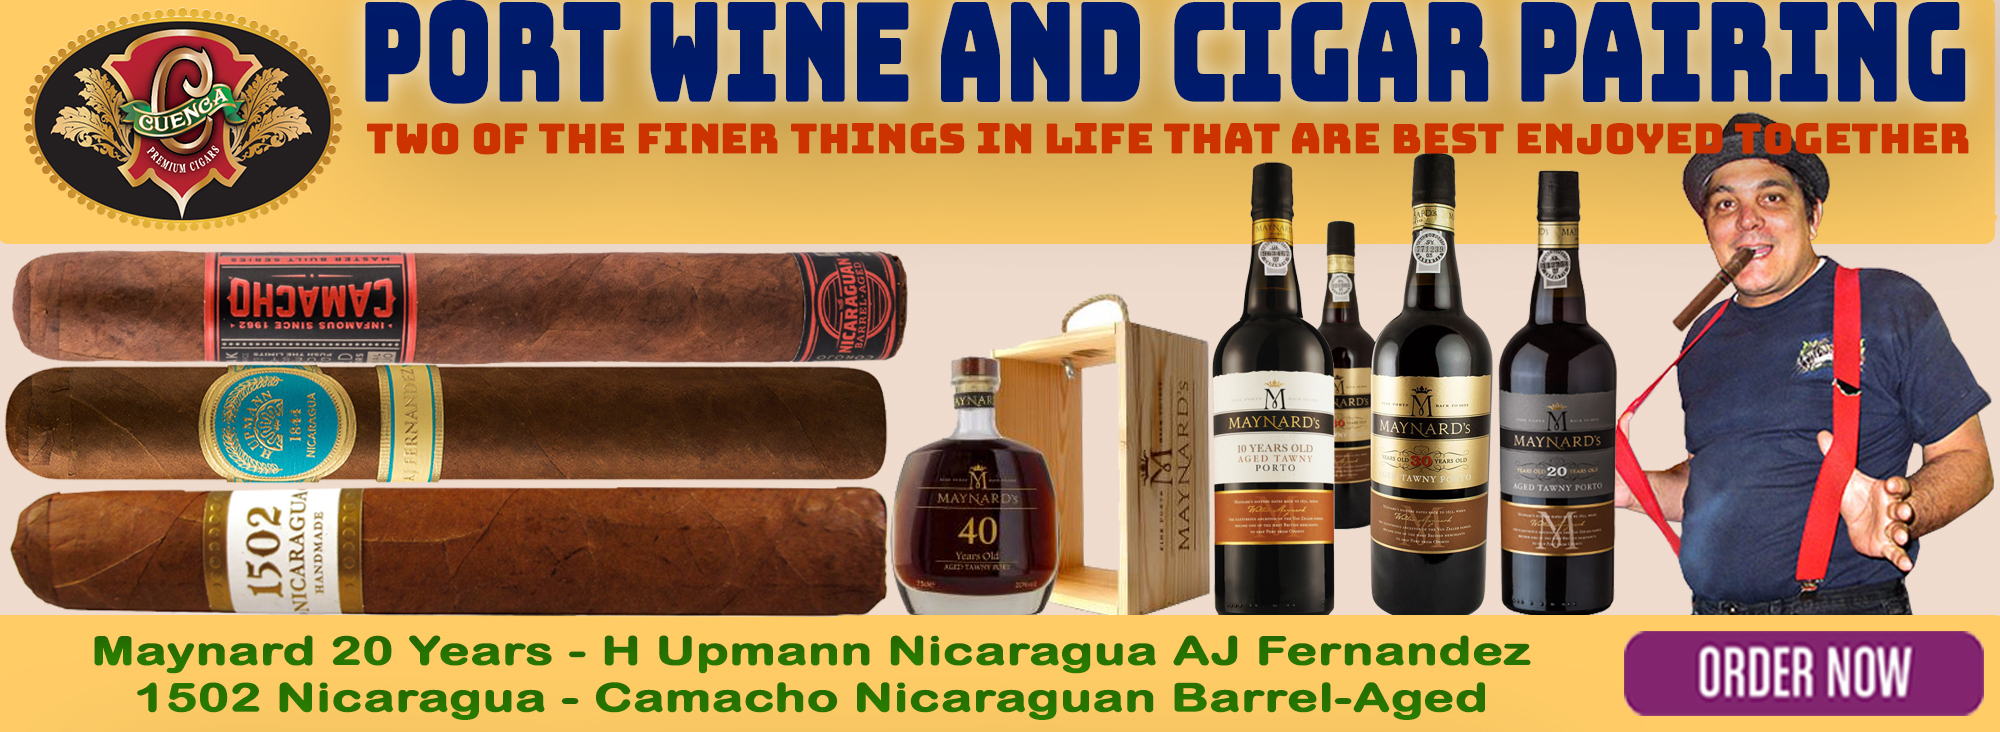 Port Wine and Cigar Pairing: Maynard 20 Years